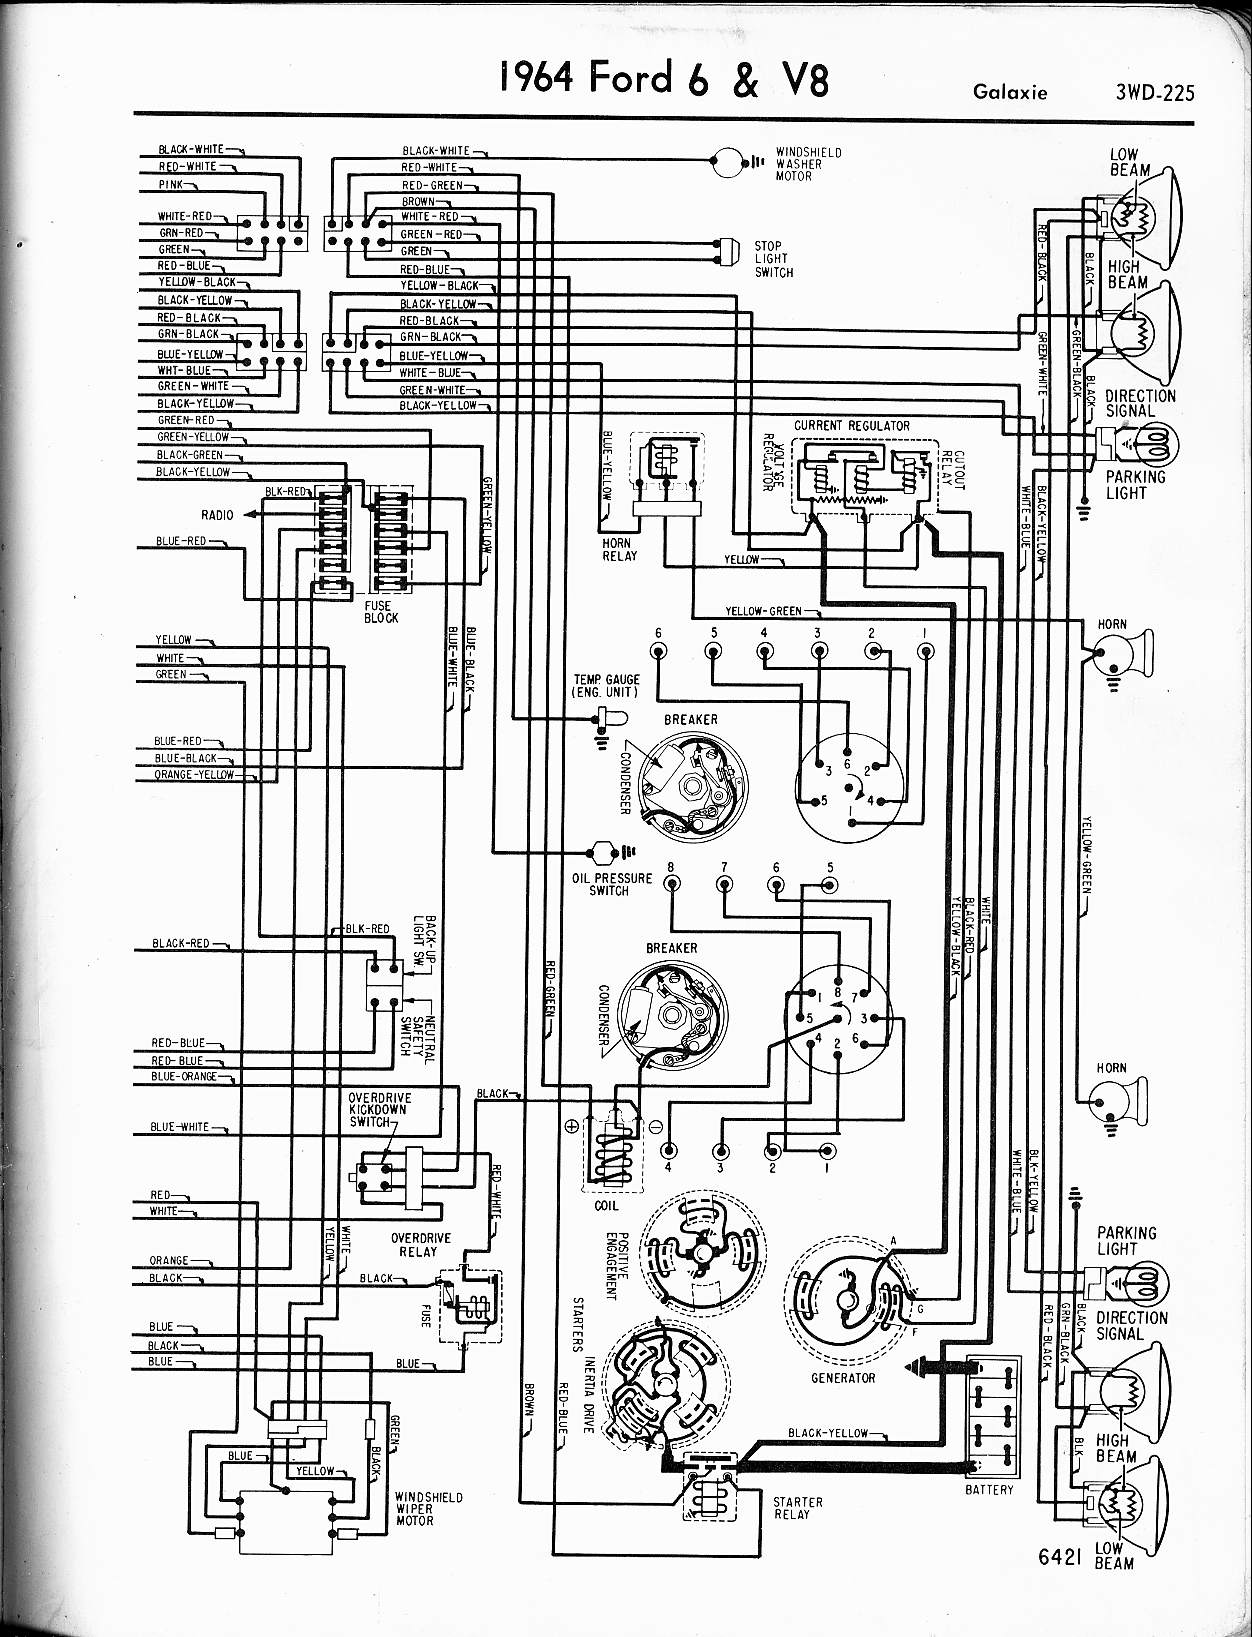 MWire5765 225 57 65 ford wiring diagrams 1964 ford wiring diagram at nearapp.co